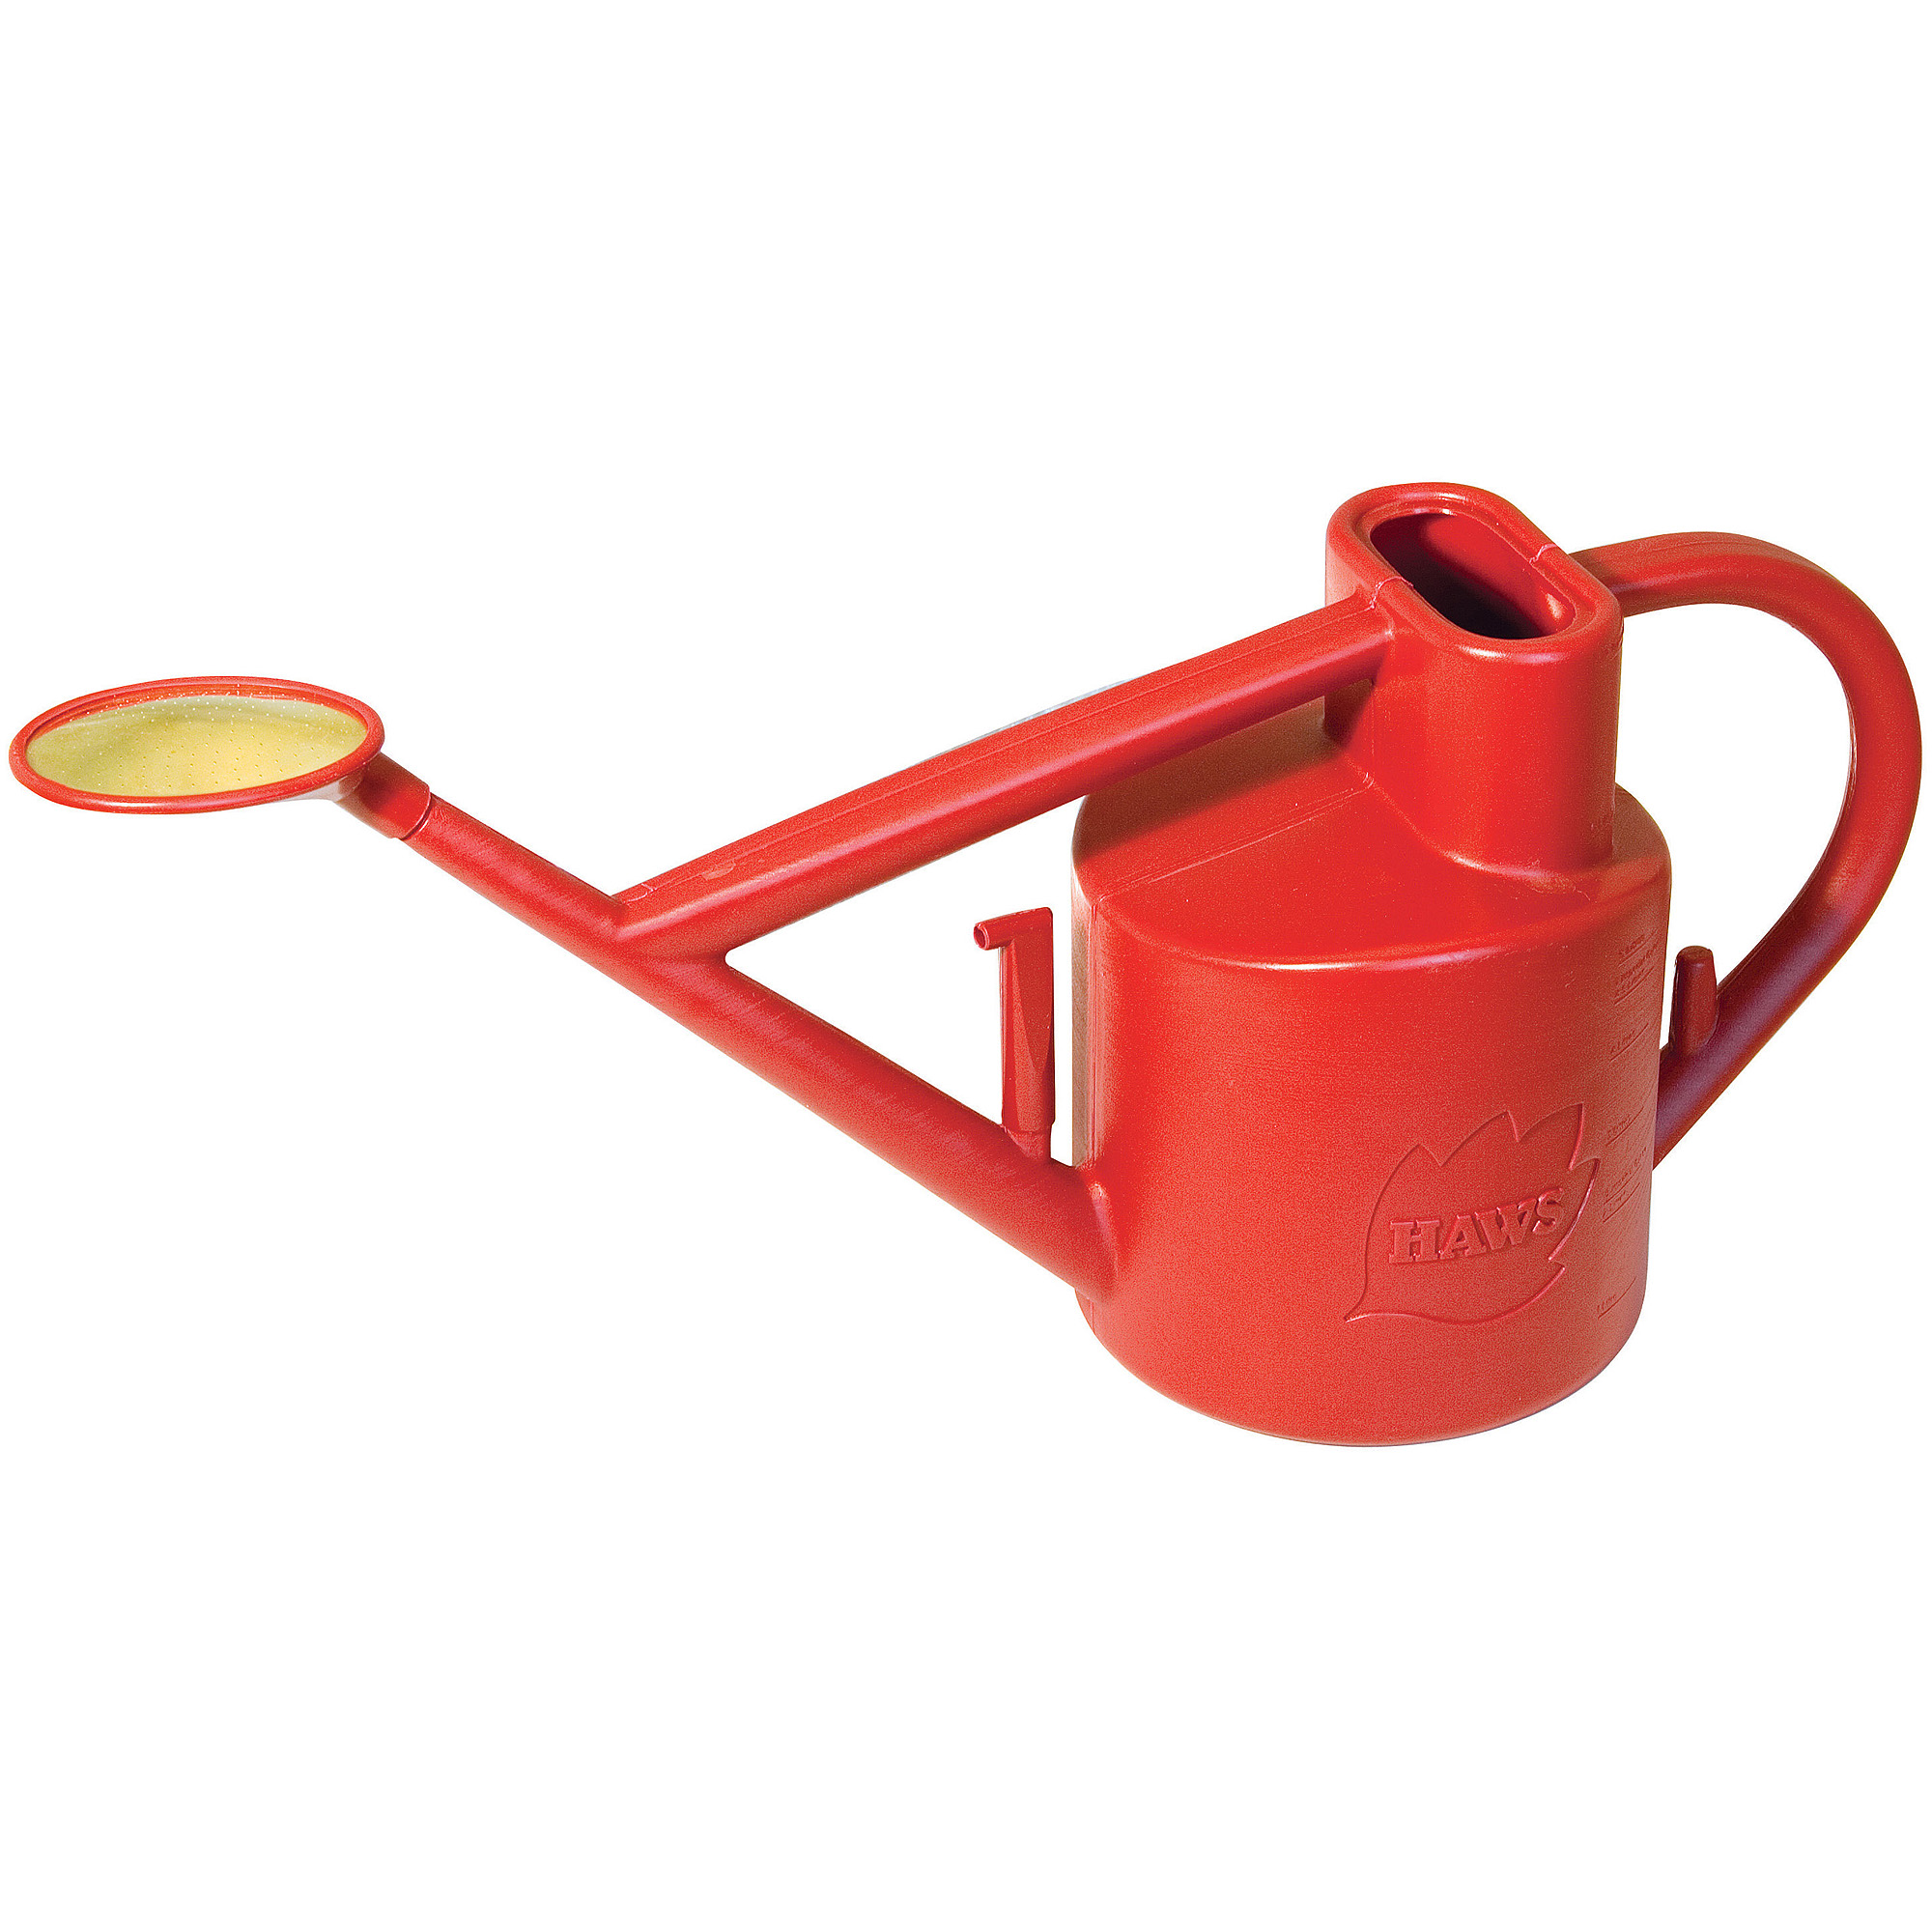 Haws Practican 1.6 gal Outdoor Plastic Watering Can, Red V119 by Bosmere